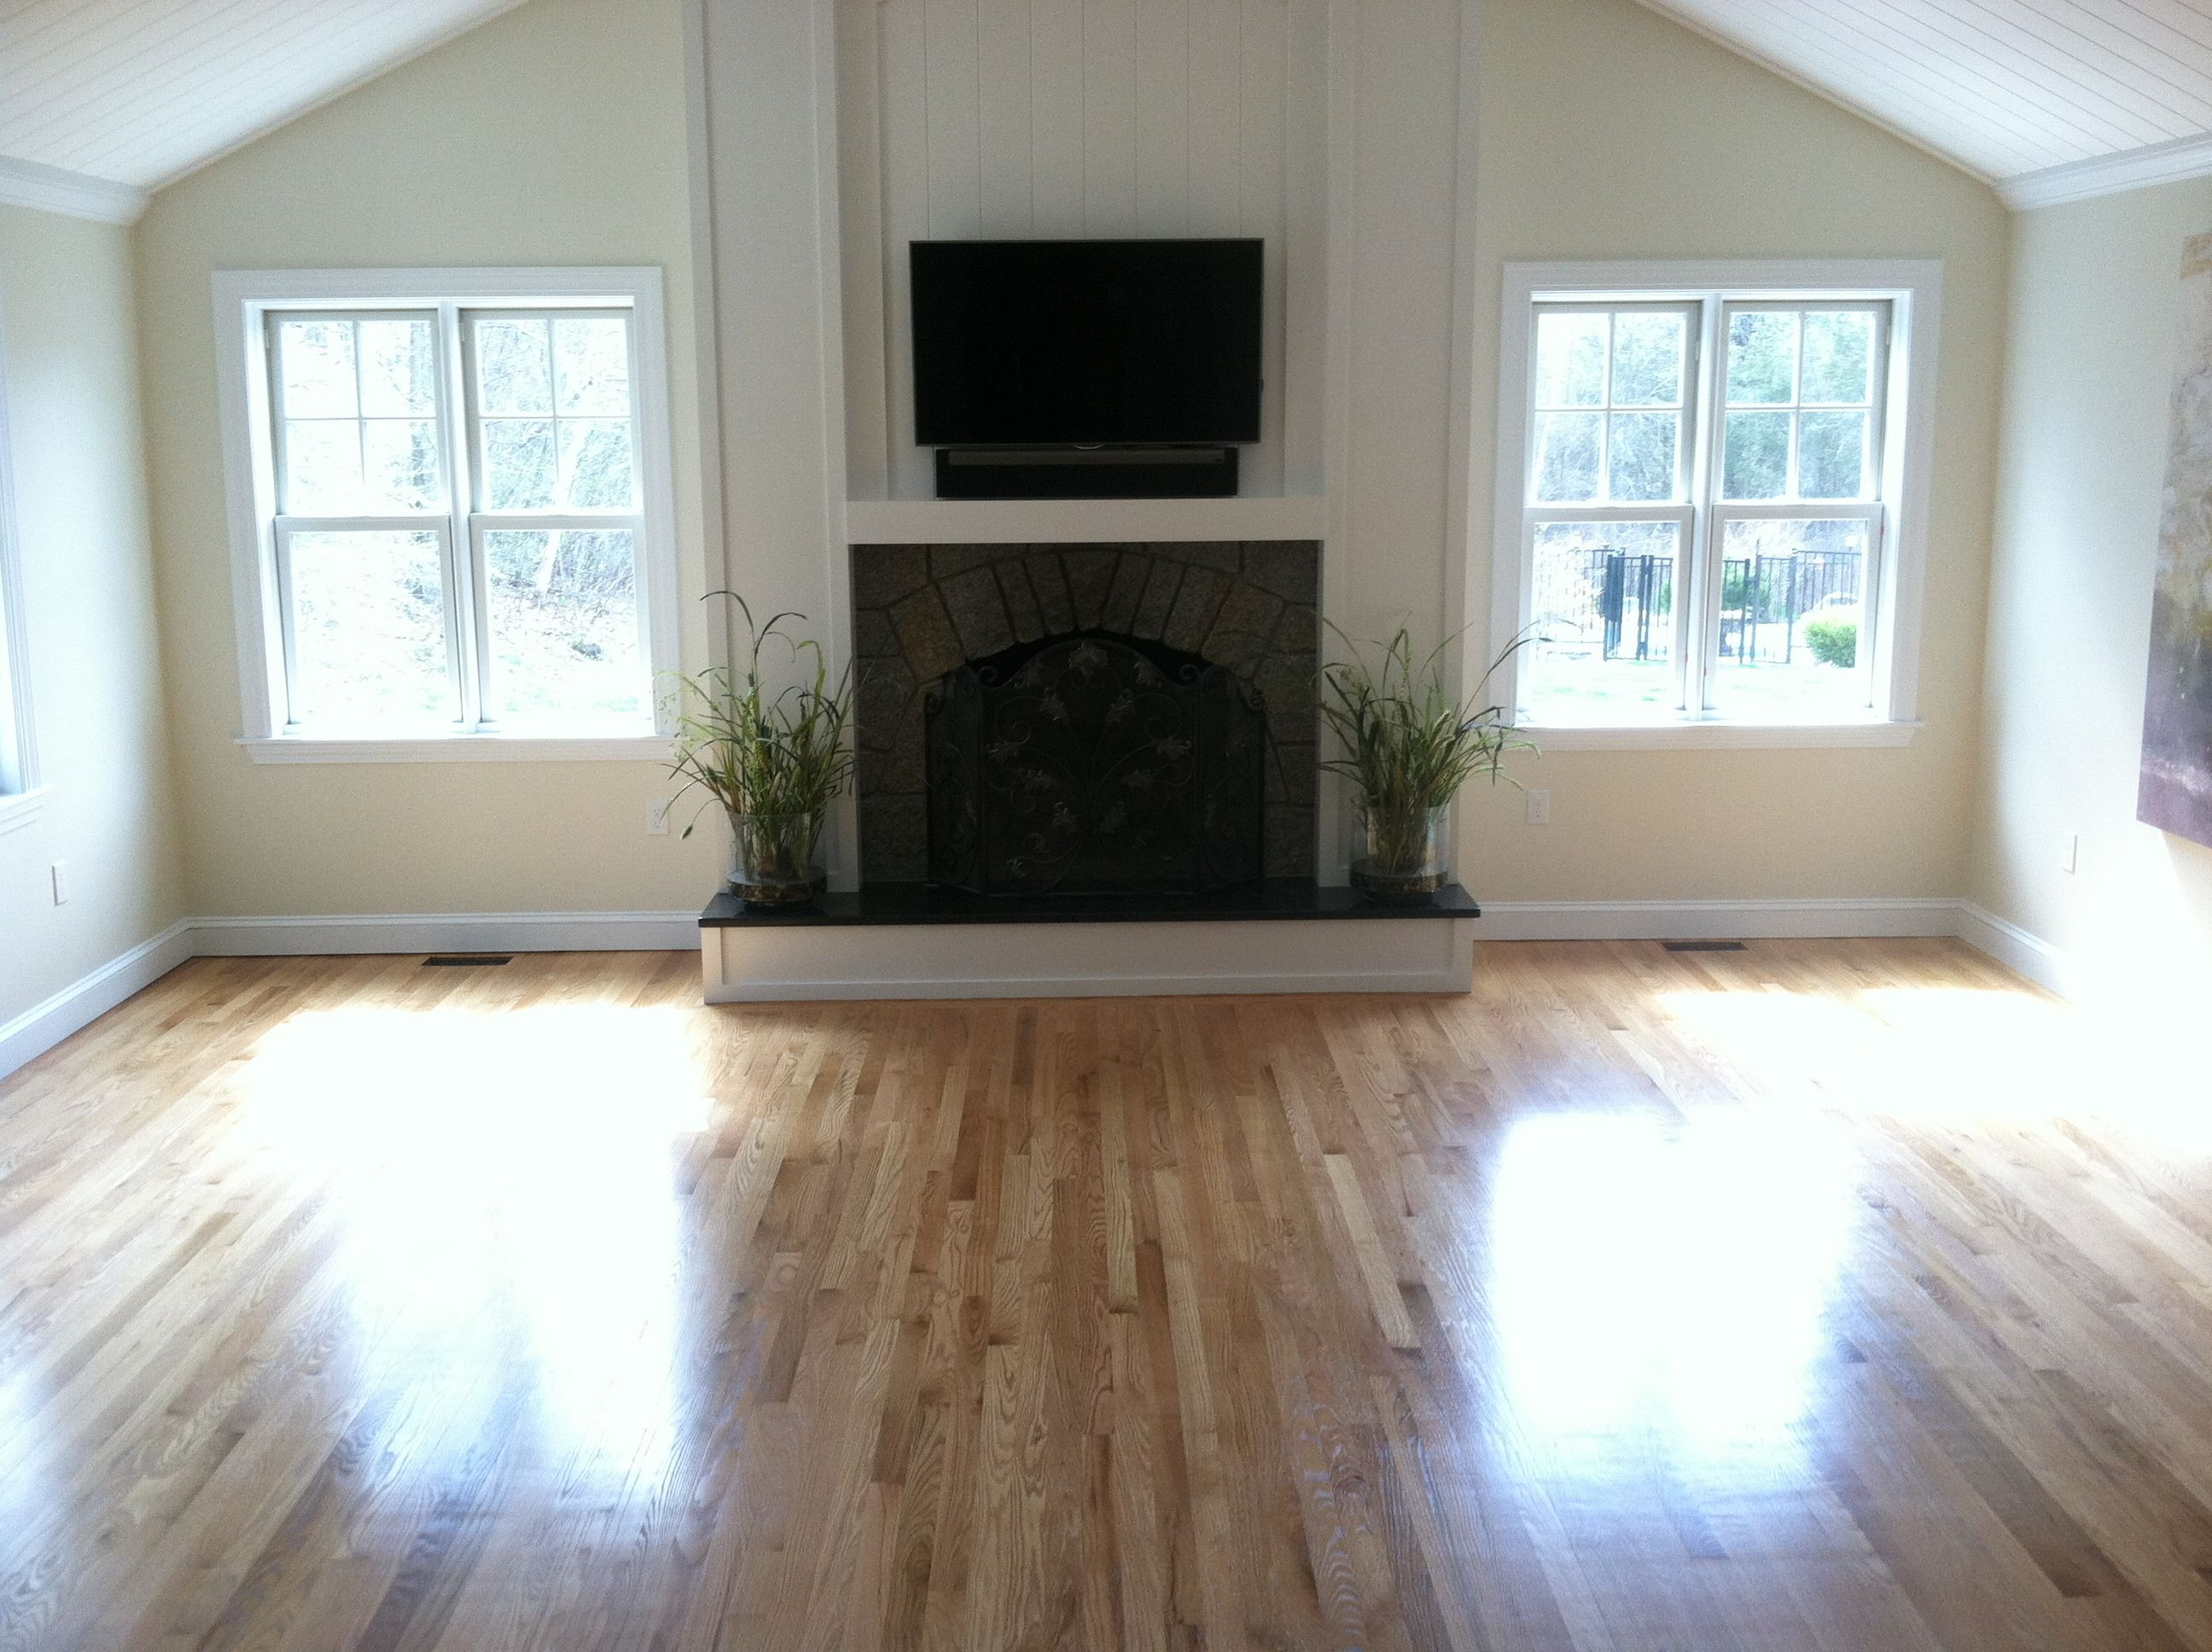 3 4 inch oak hardwood flooring of select and better red oak flooring with 3 coats of bona woodline with regard to select and better red oak flooring with 3 coats of bona woodline polyurethane semigloss floor finish